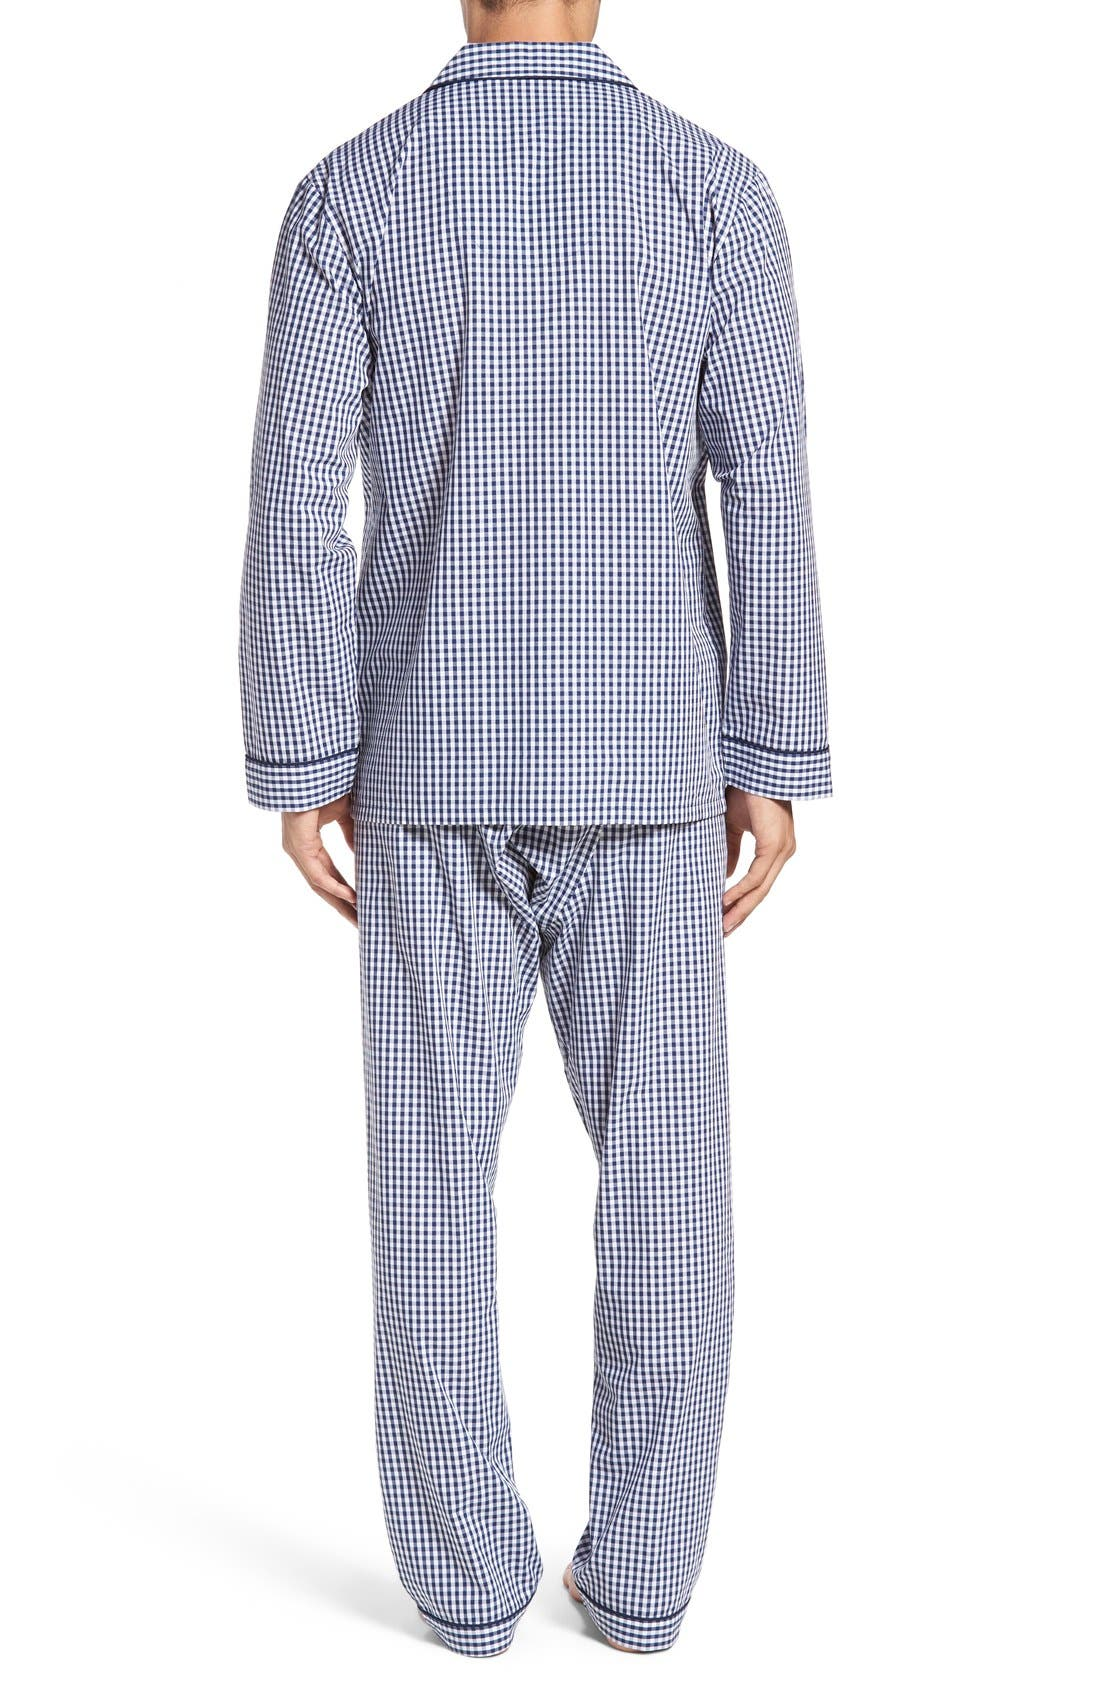 'Hot & Cold' Pajamas,                             Alternate thumbnail 2, color,                             Blue Gingham